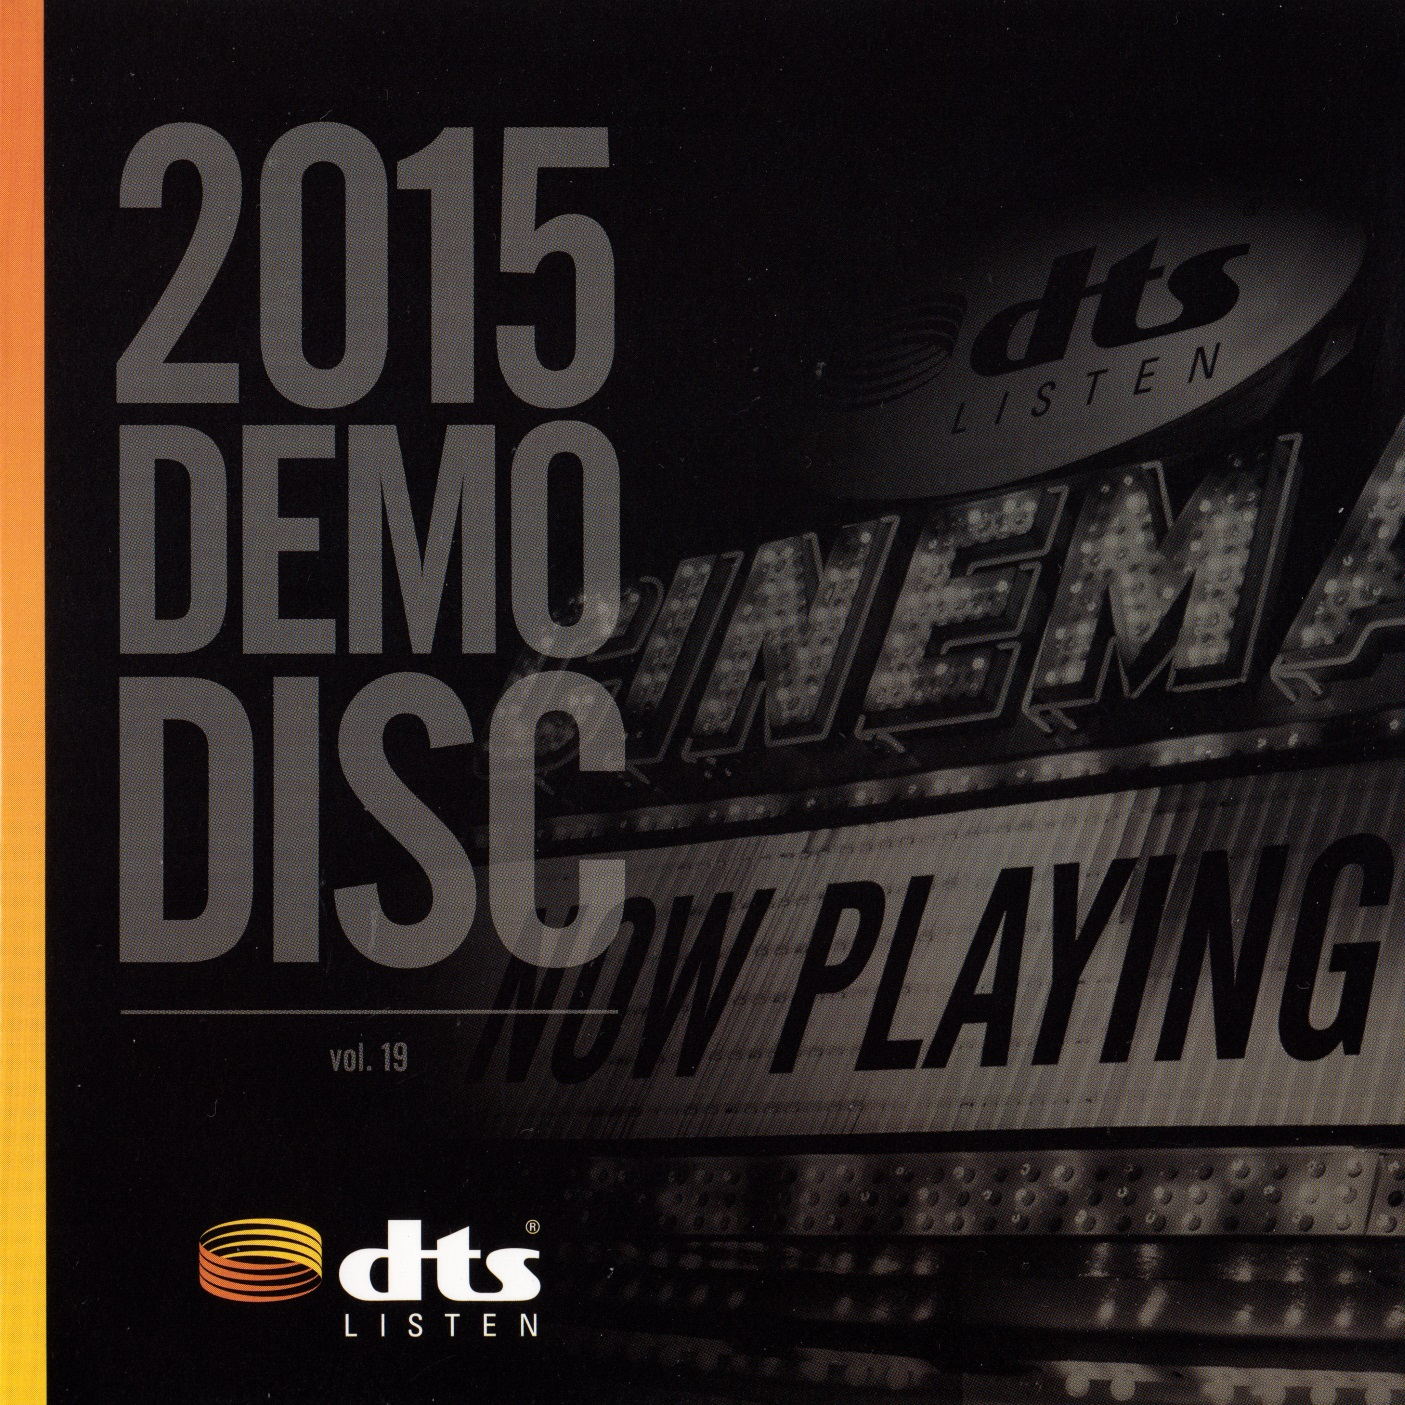 2018 dts-x demo disk